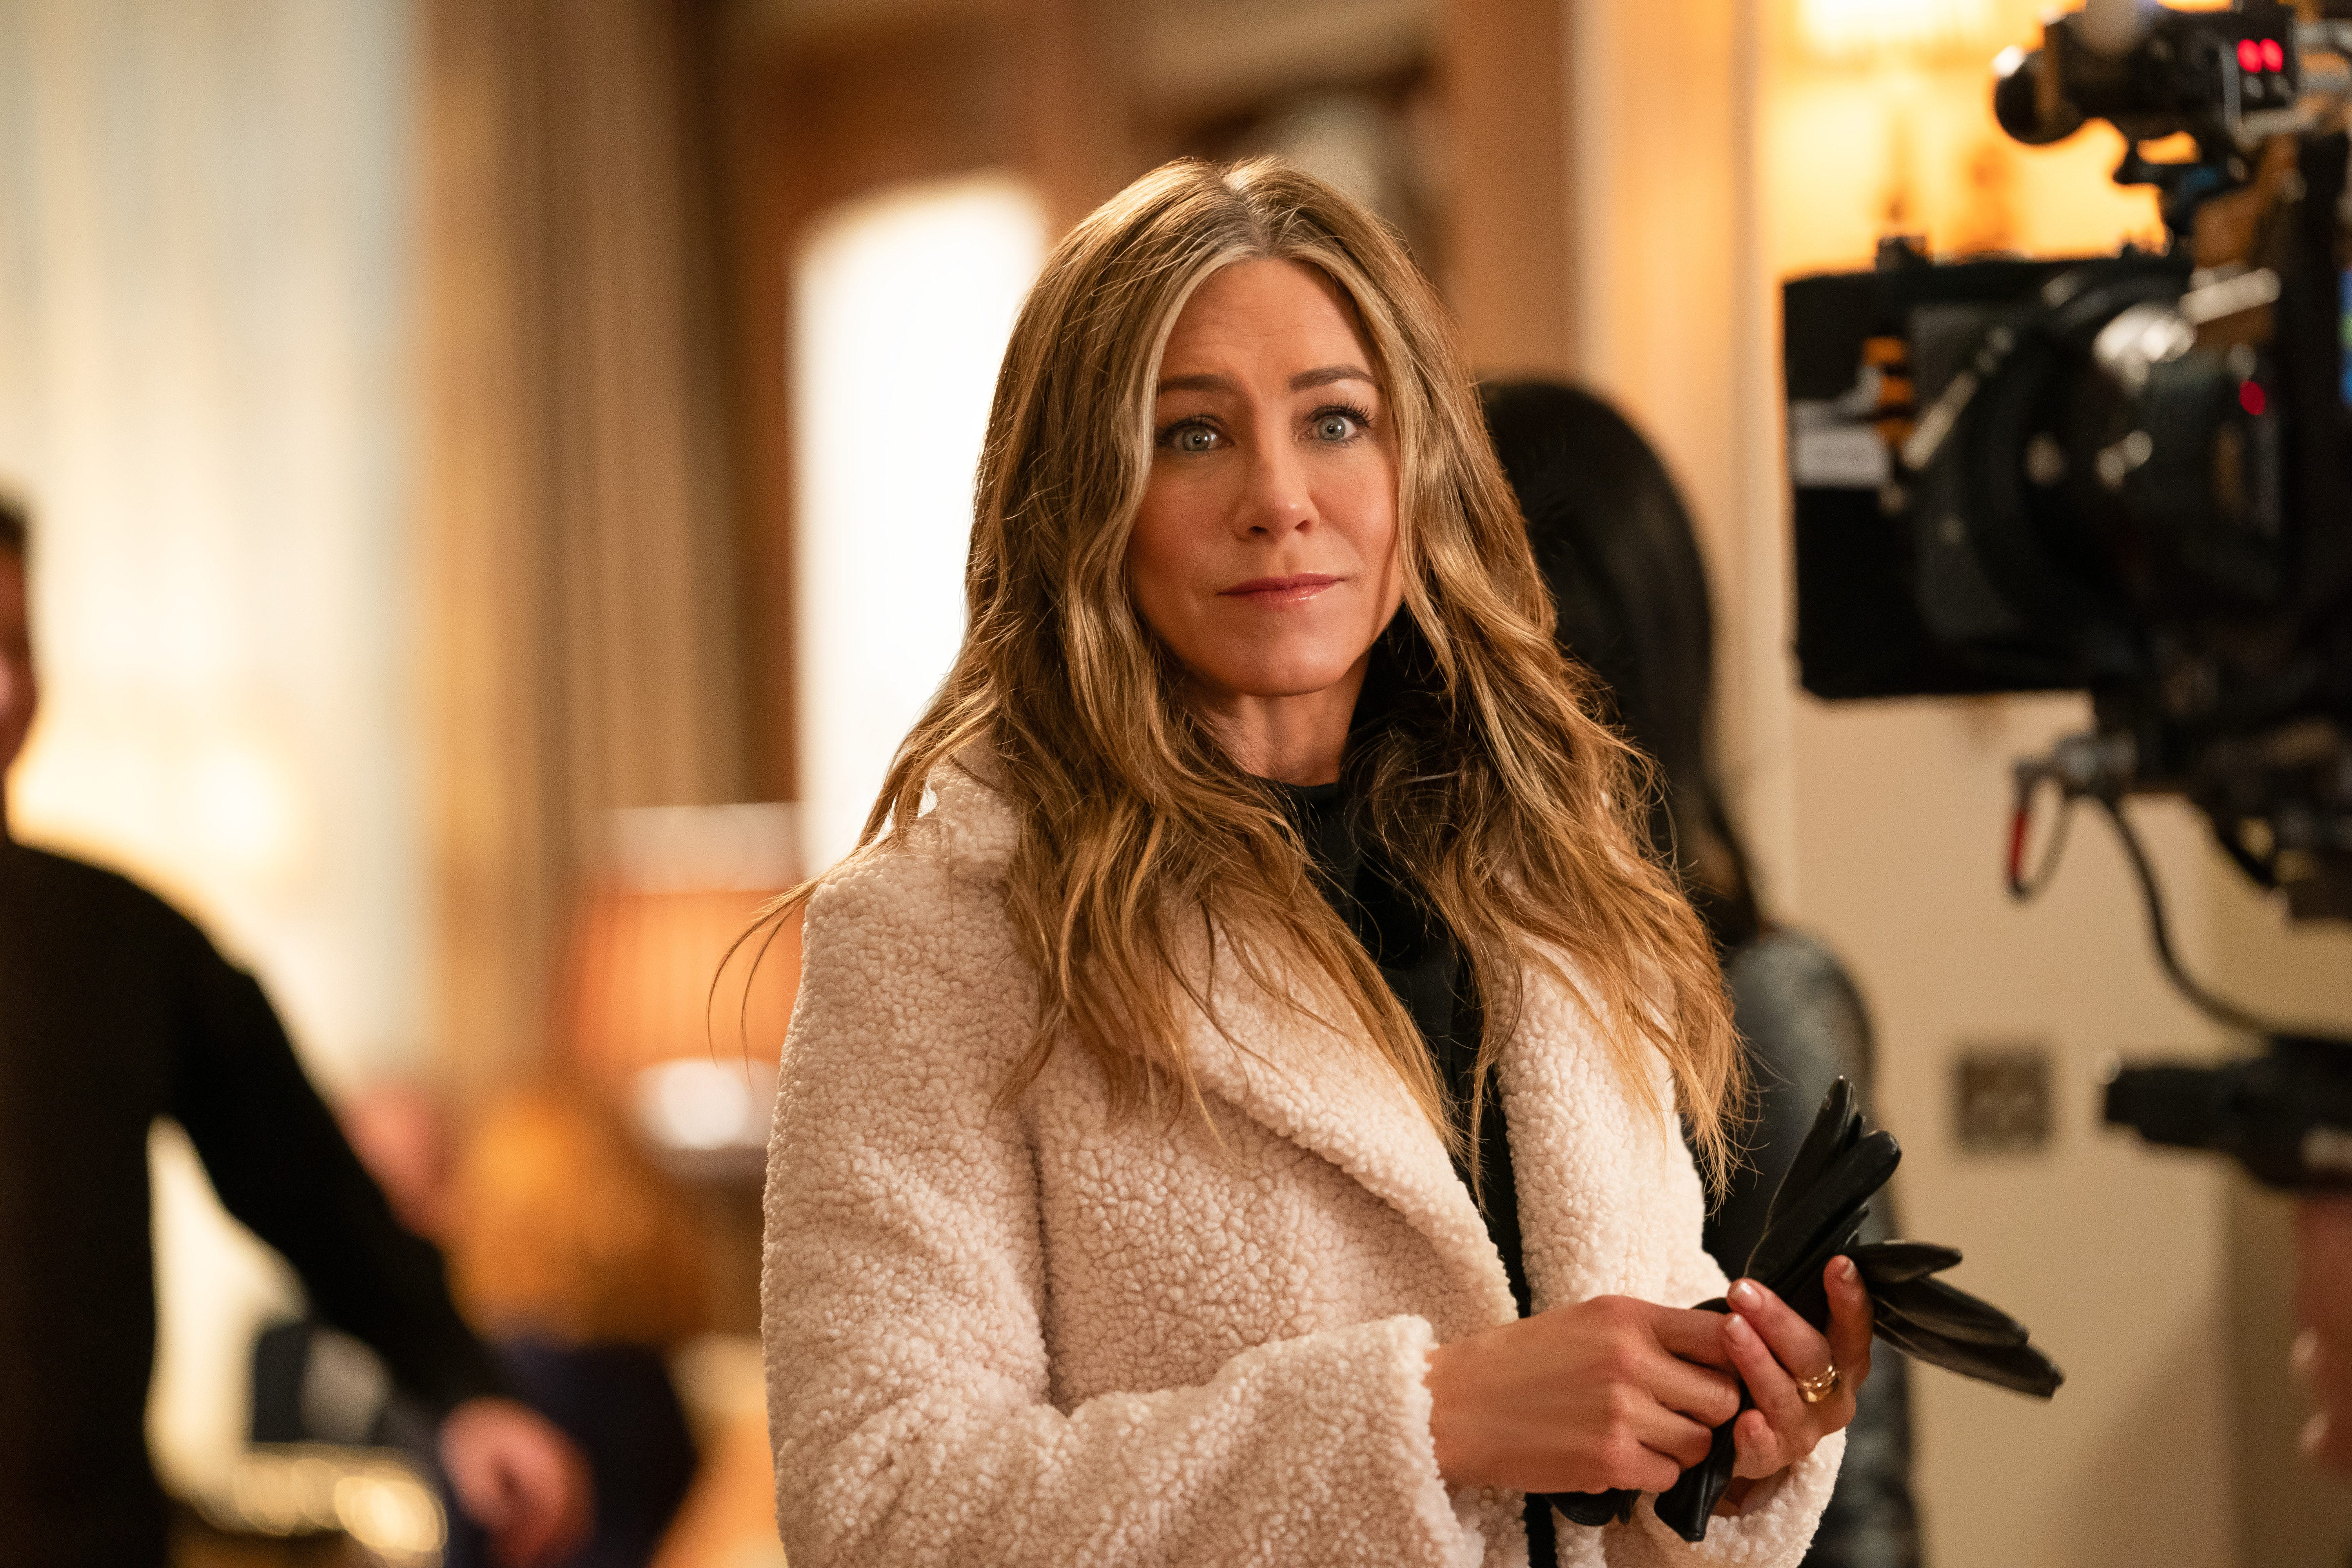 The Morning Show  Season 2: Jennifer Aniston says Alex is trying to  survive at any cost